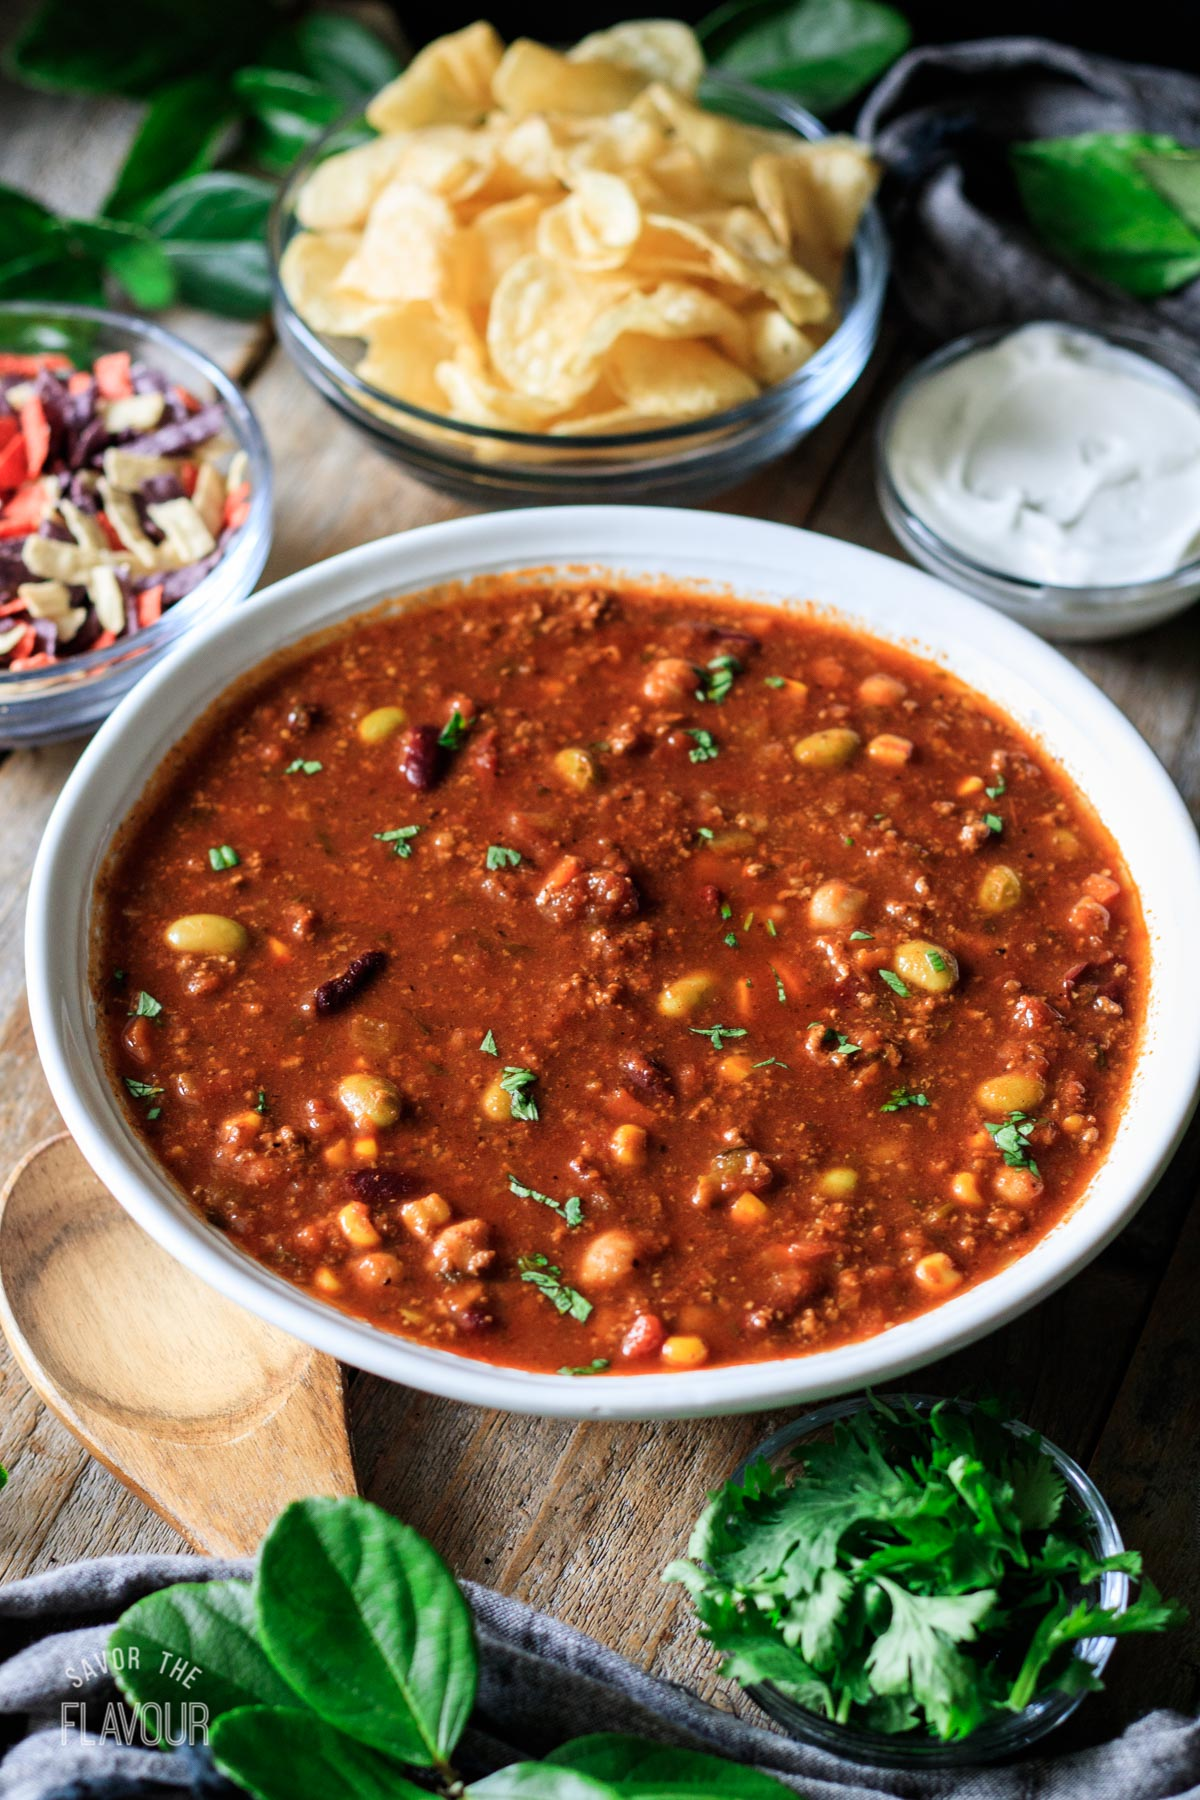 large bowl of Panera turkey chili with bowls of toppings